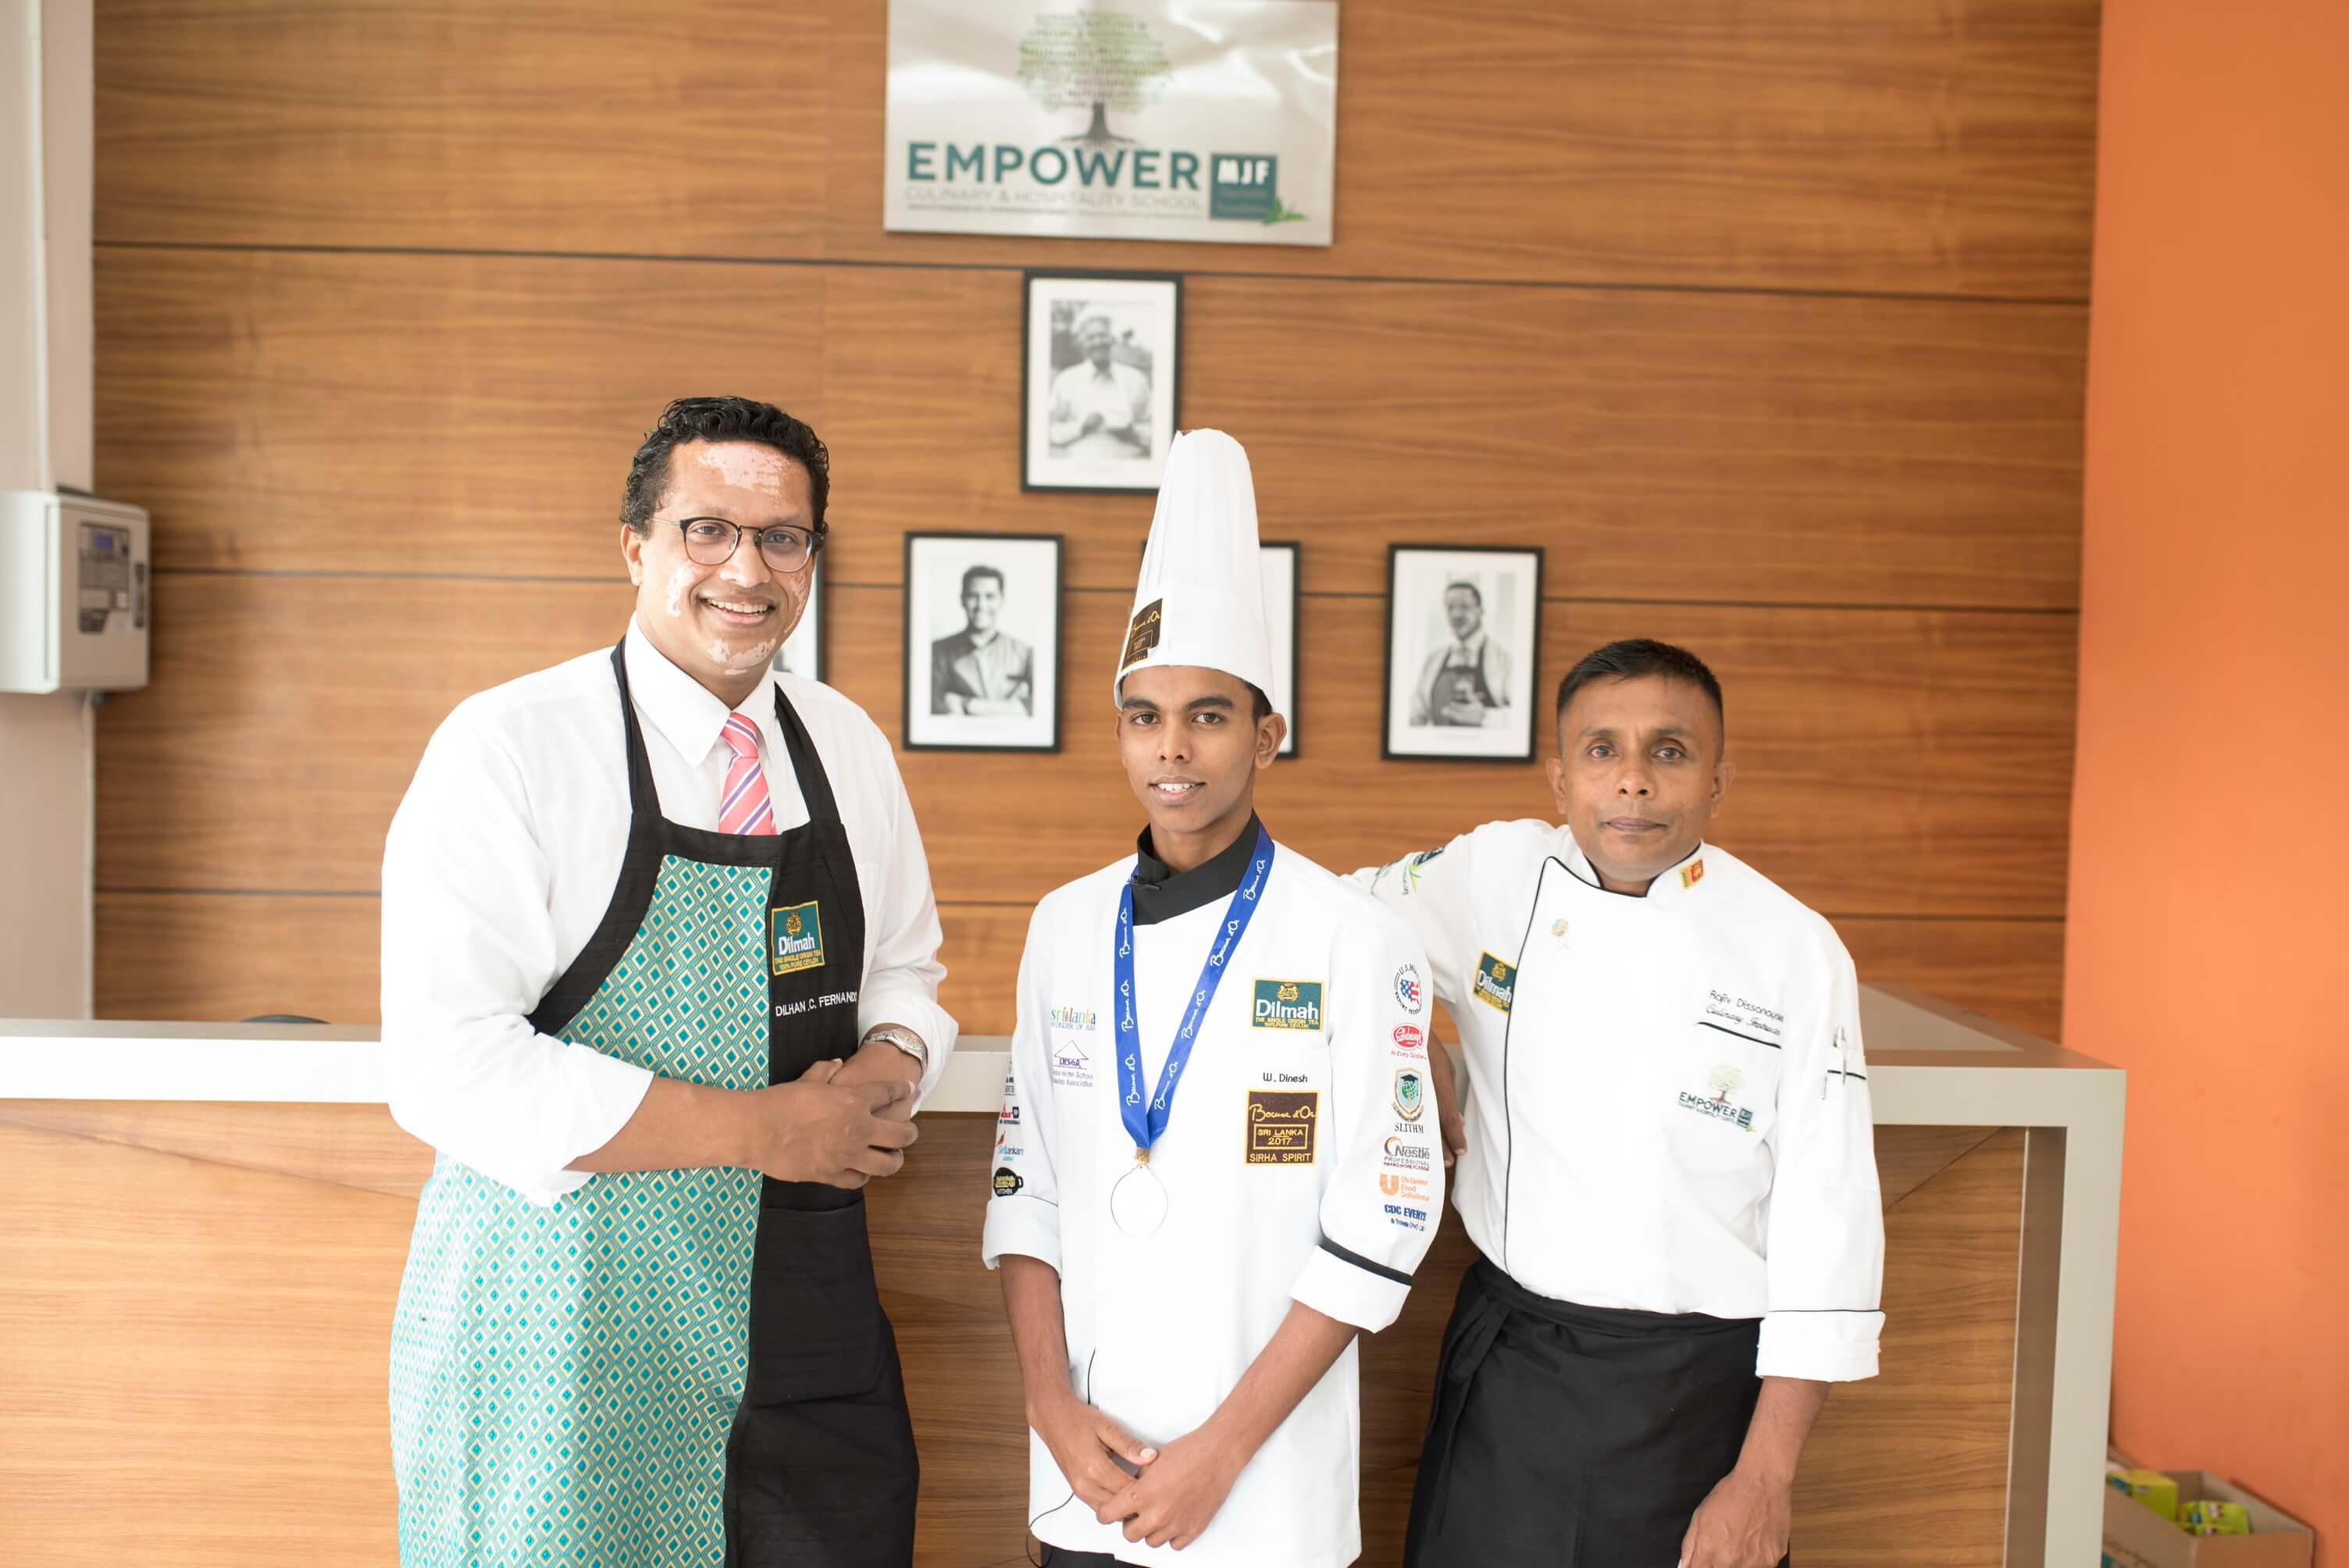 From unemployed to culinary role model in eight months - The story of a Bocuse d'Or Sri Lanka Gold Medalist